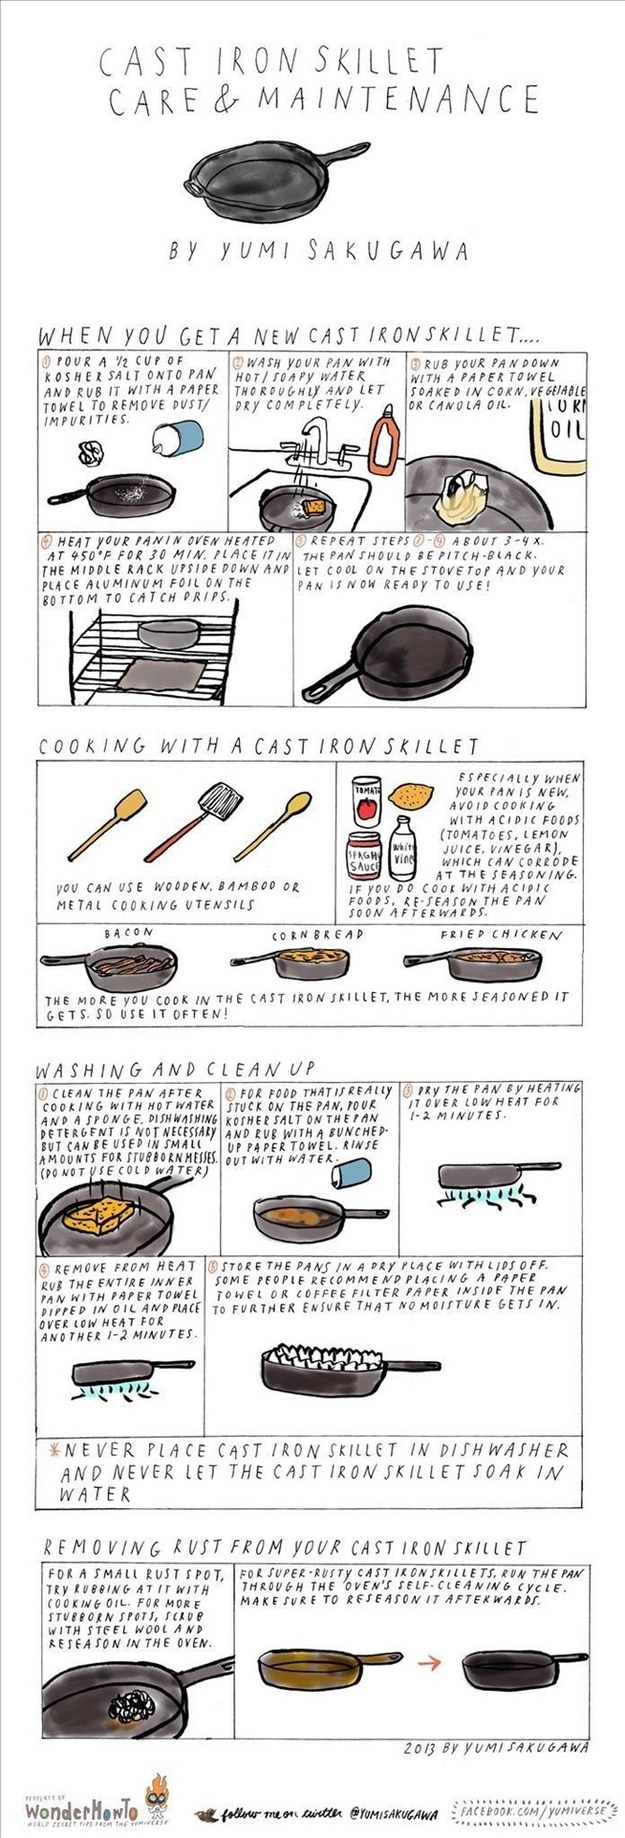 Cast iron skillets: How to cook and maintenance